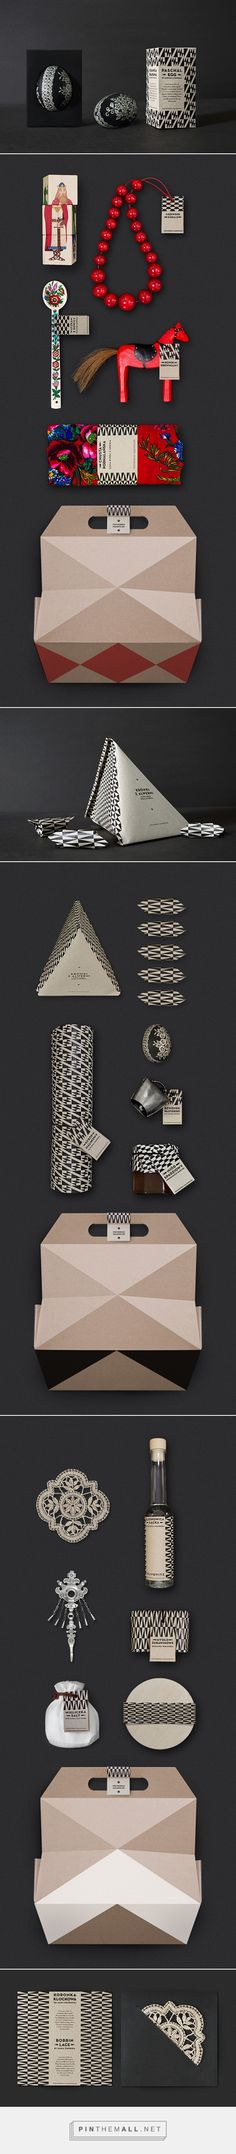 Przybornik Małopolski souvenir collection by Studio Otwarte. Source: Packaging…